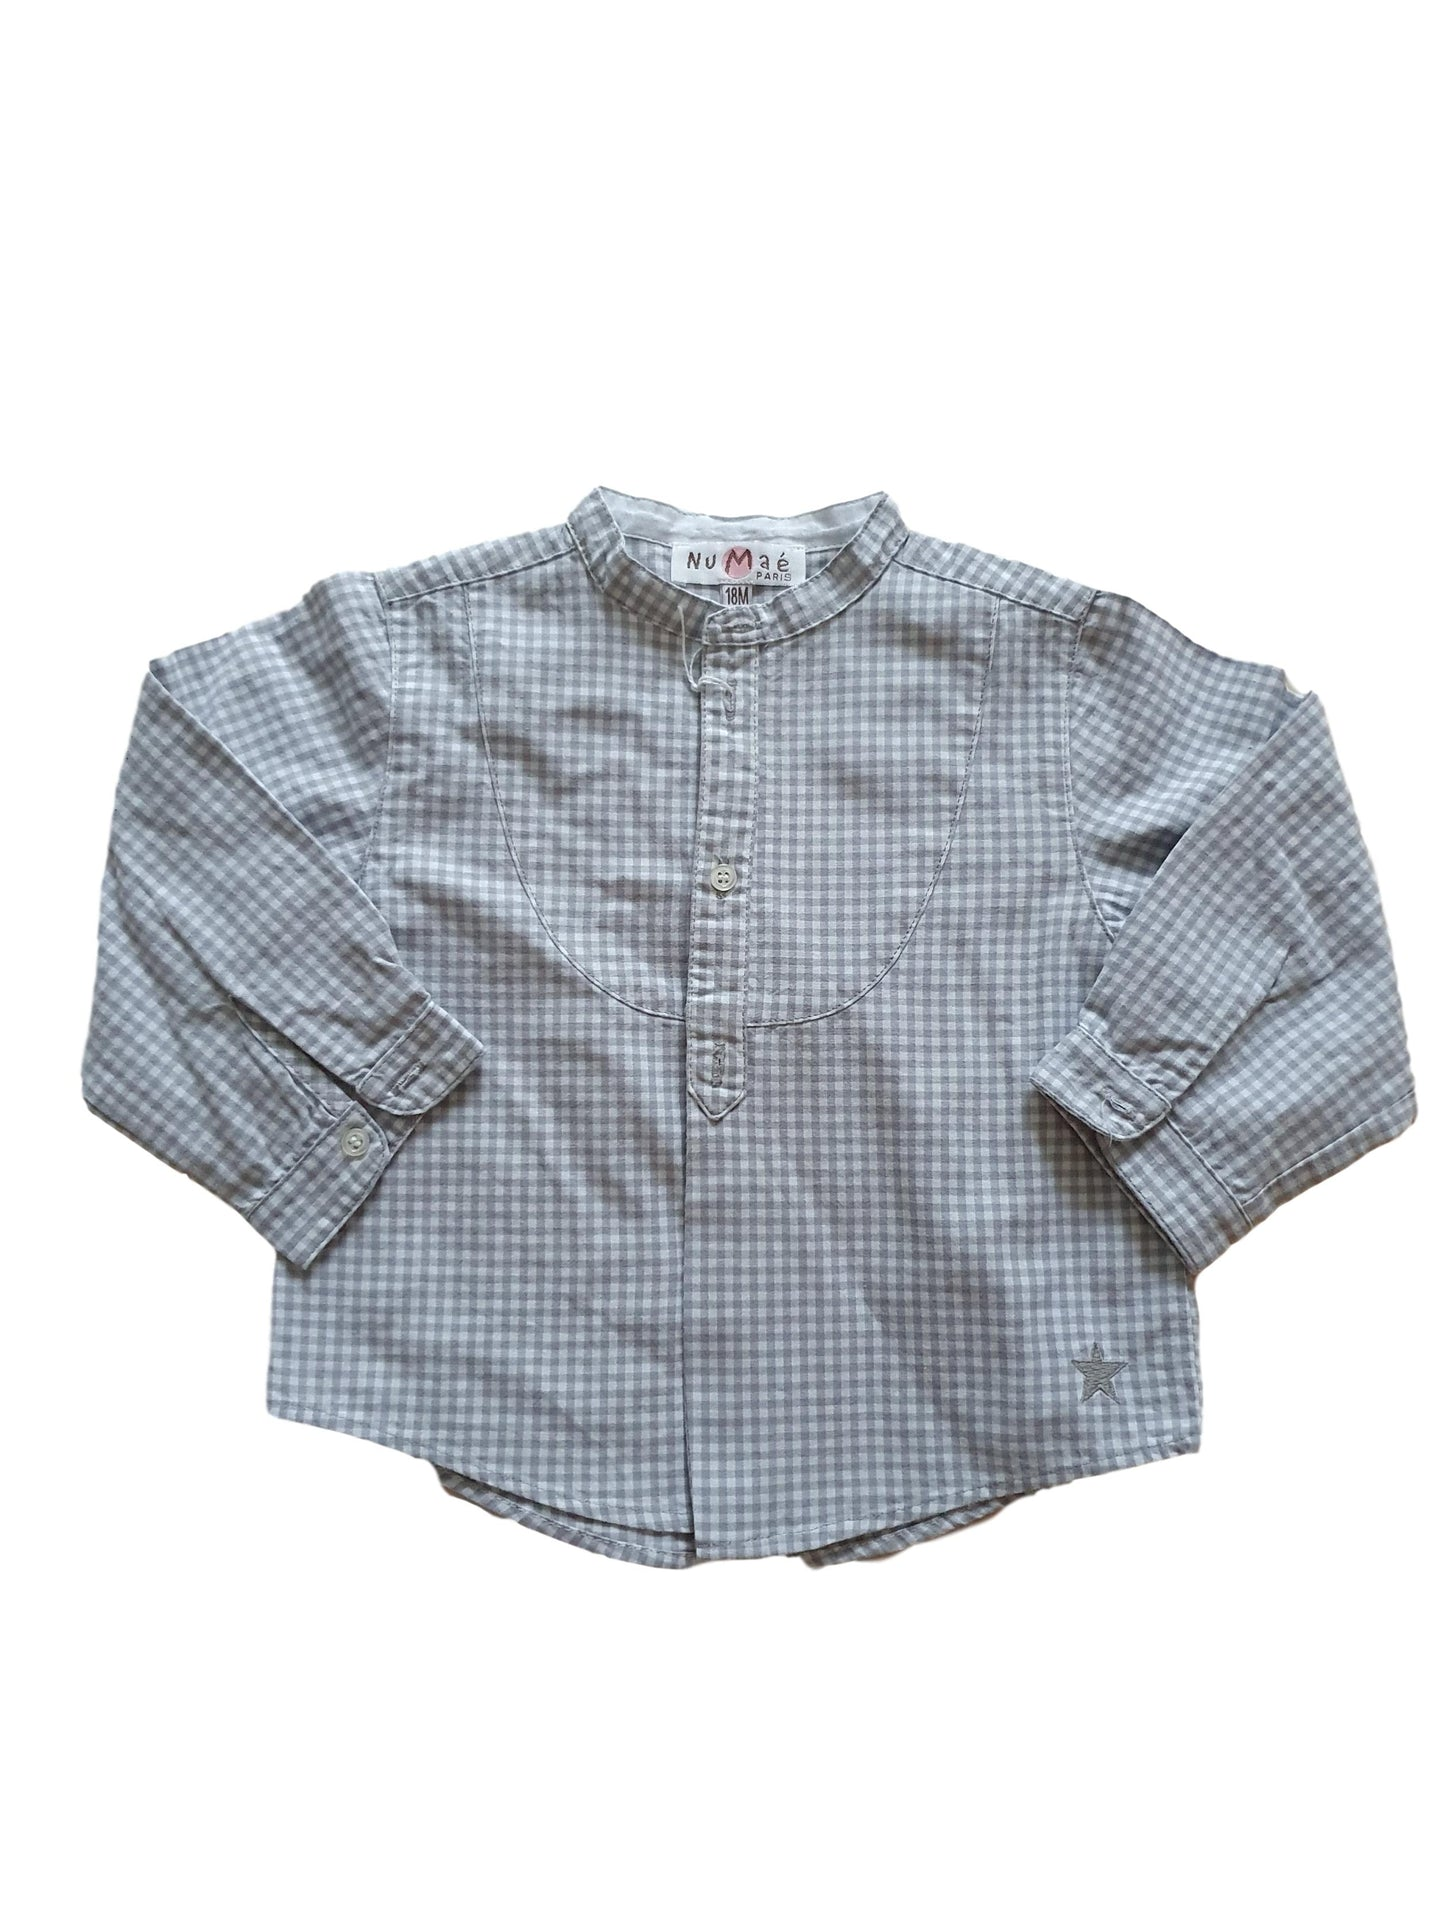 NUMAE boy shirt 18m